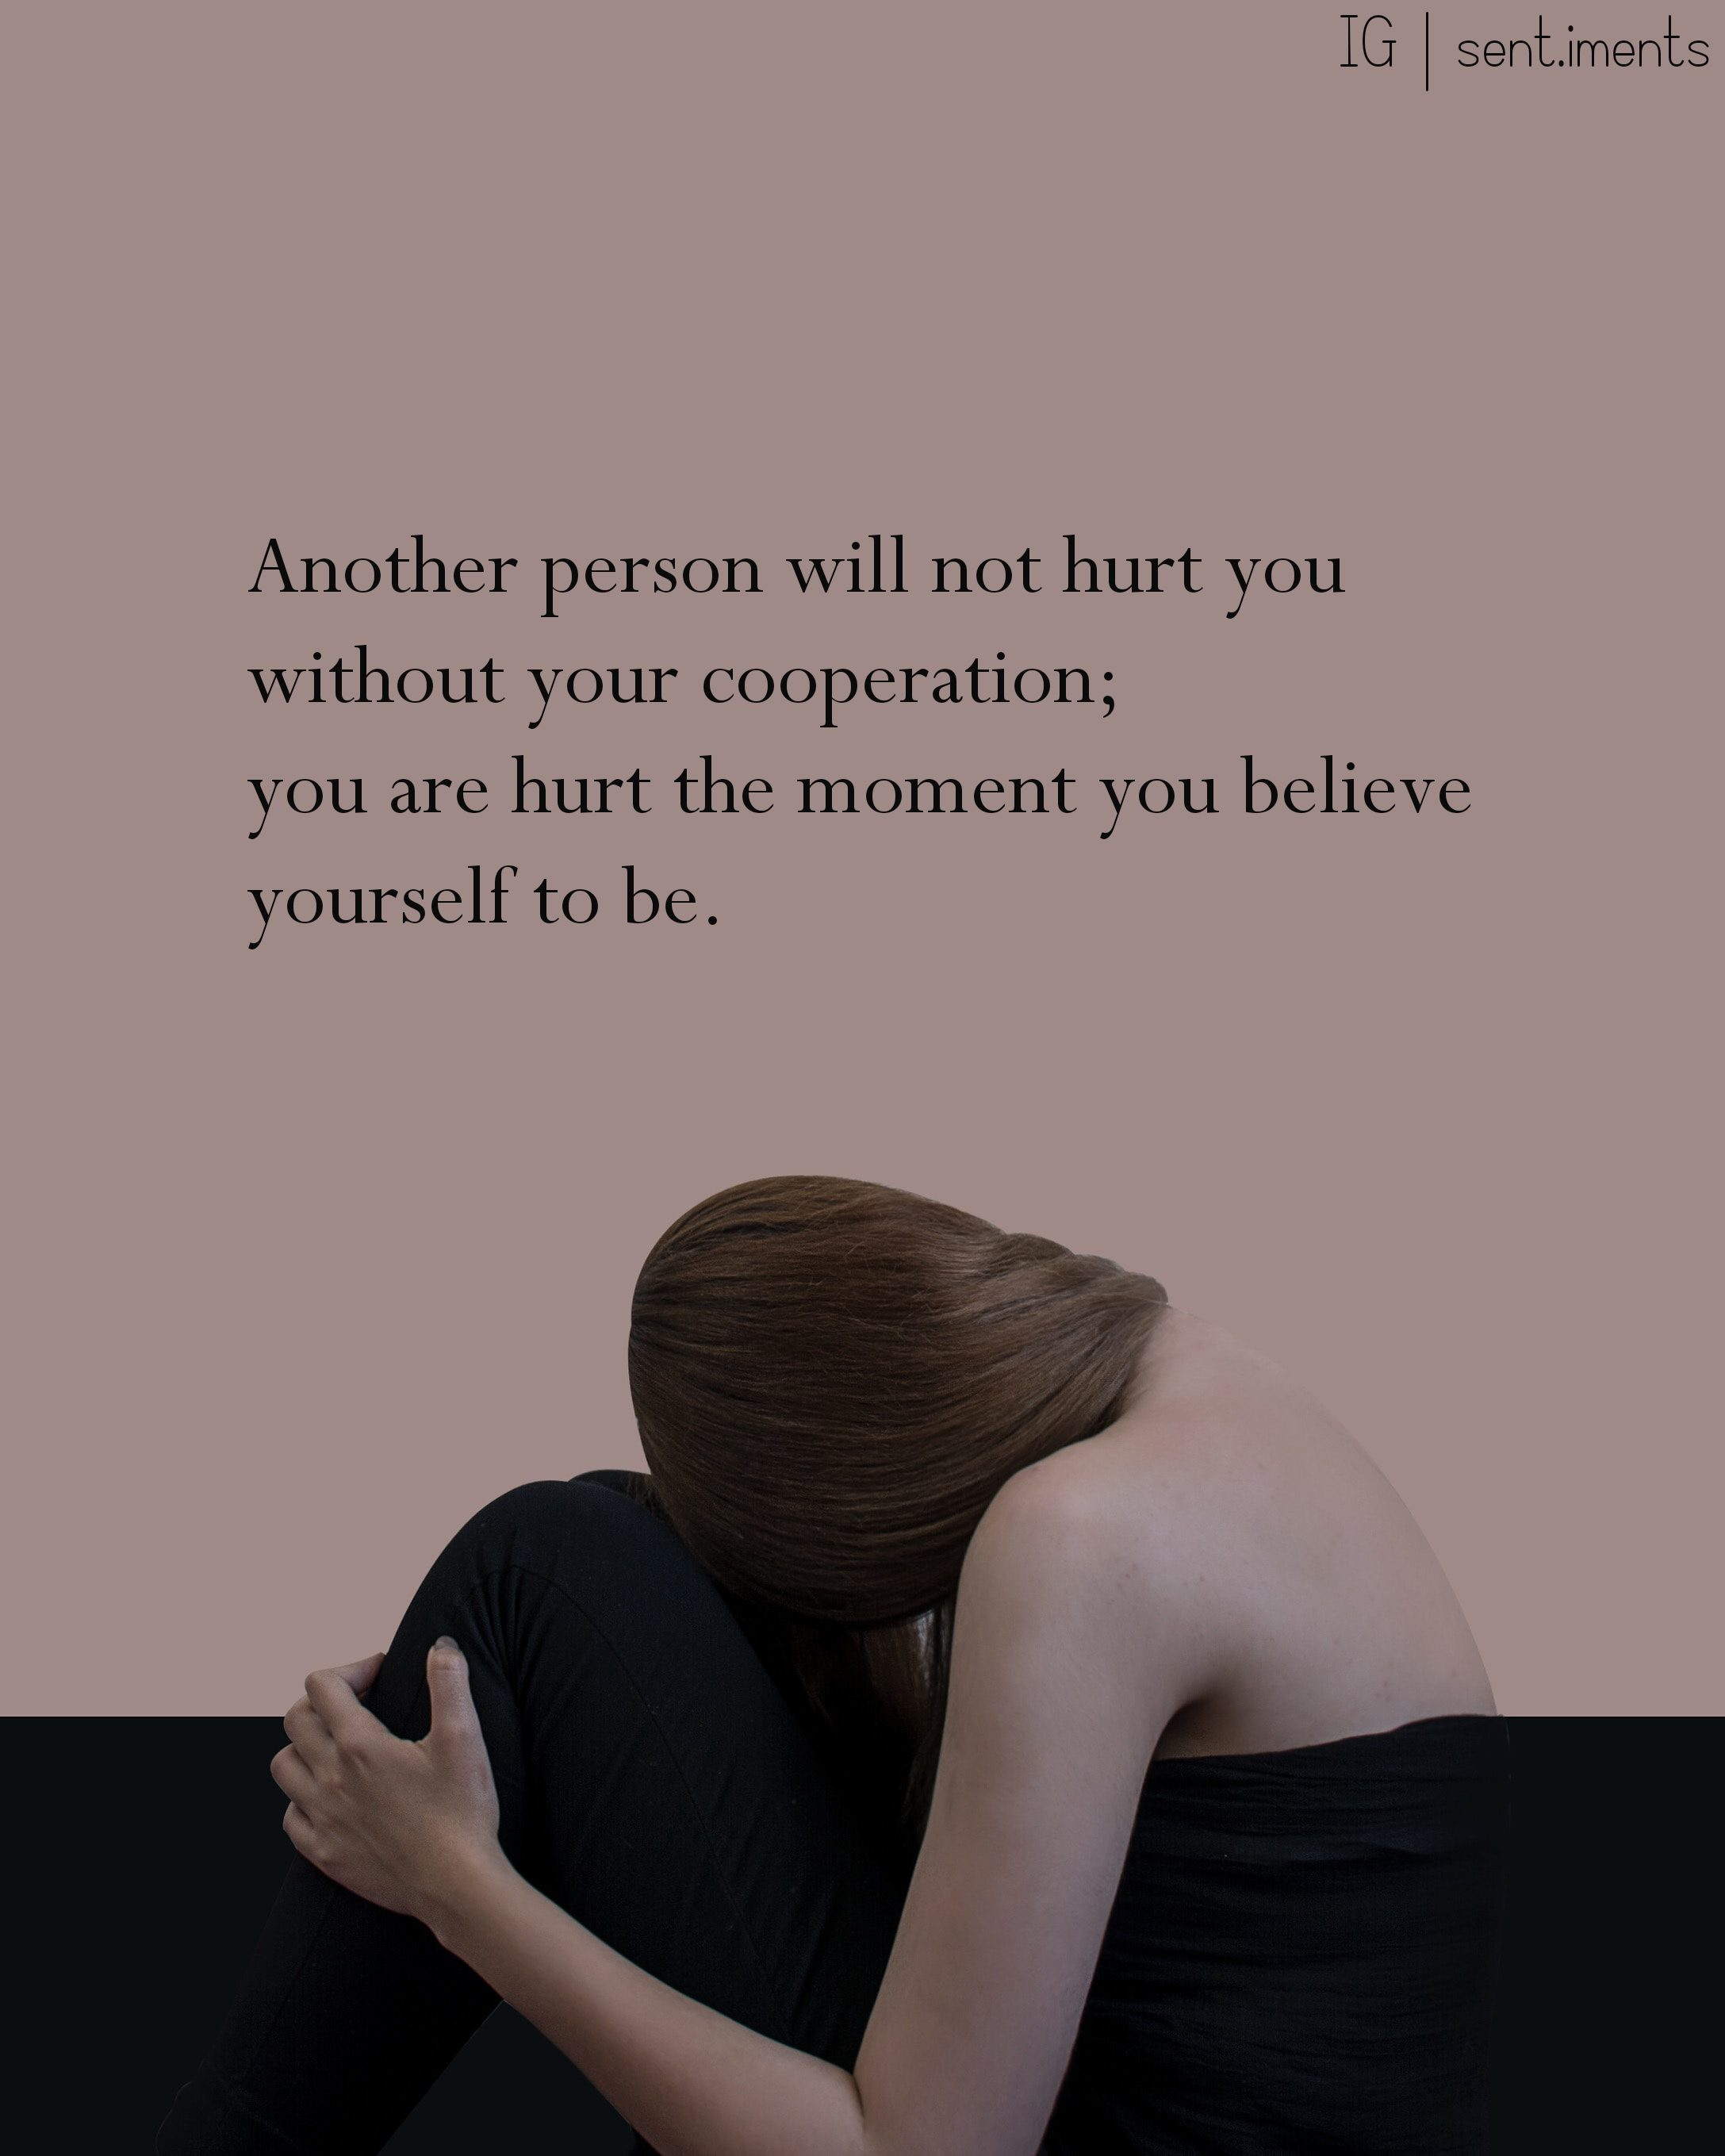 """Another person will not hurt you without your cooperation; you are hurt the moment you believe yourself to be."" By Marcus Aurelius [2175 X 2718]"